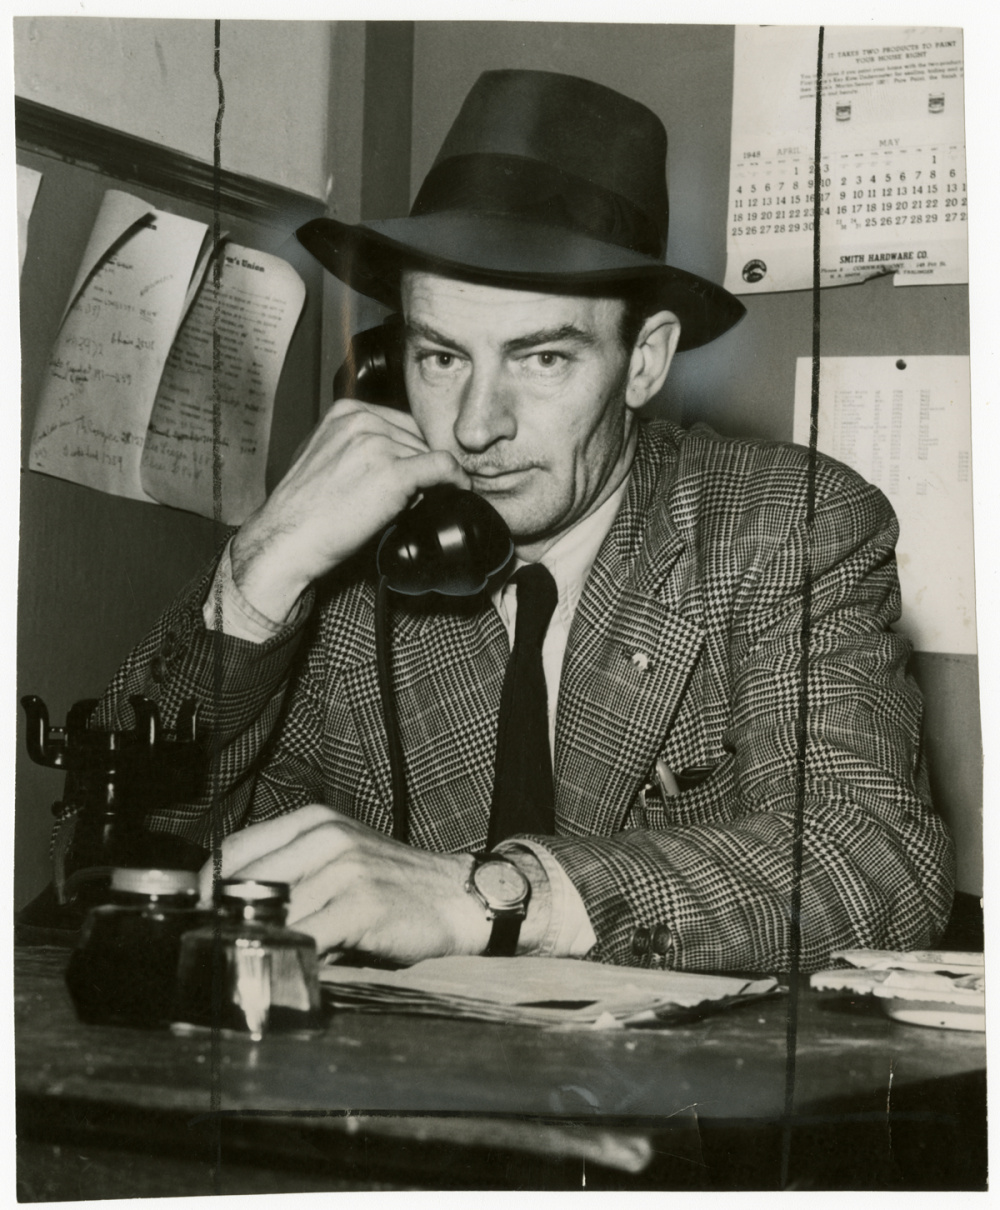 Unidentified photographer, Milton 'Buzz' Nuttall, Canadian Seamen's Union business agent, in Moose Hall, Cornwall, Ontario, 1948. Gelatin silver print, 1948. Gift of The Globe and Mail newspaper to the Canadian Photography Institute of the National Gallery of Canada.